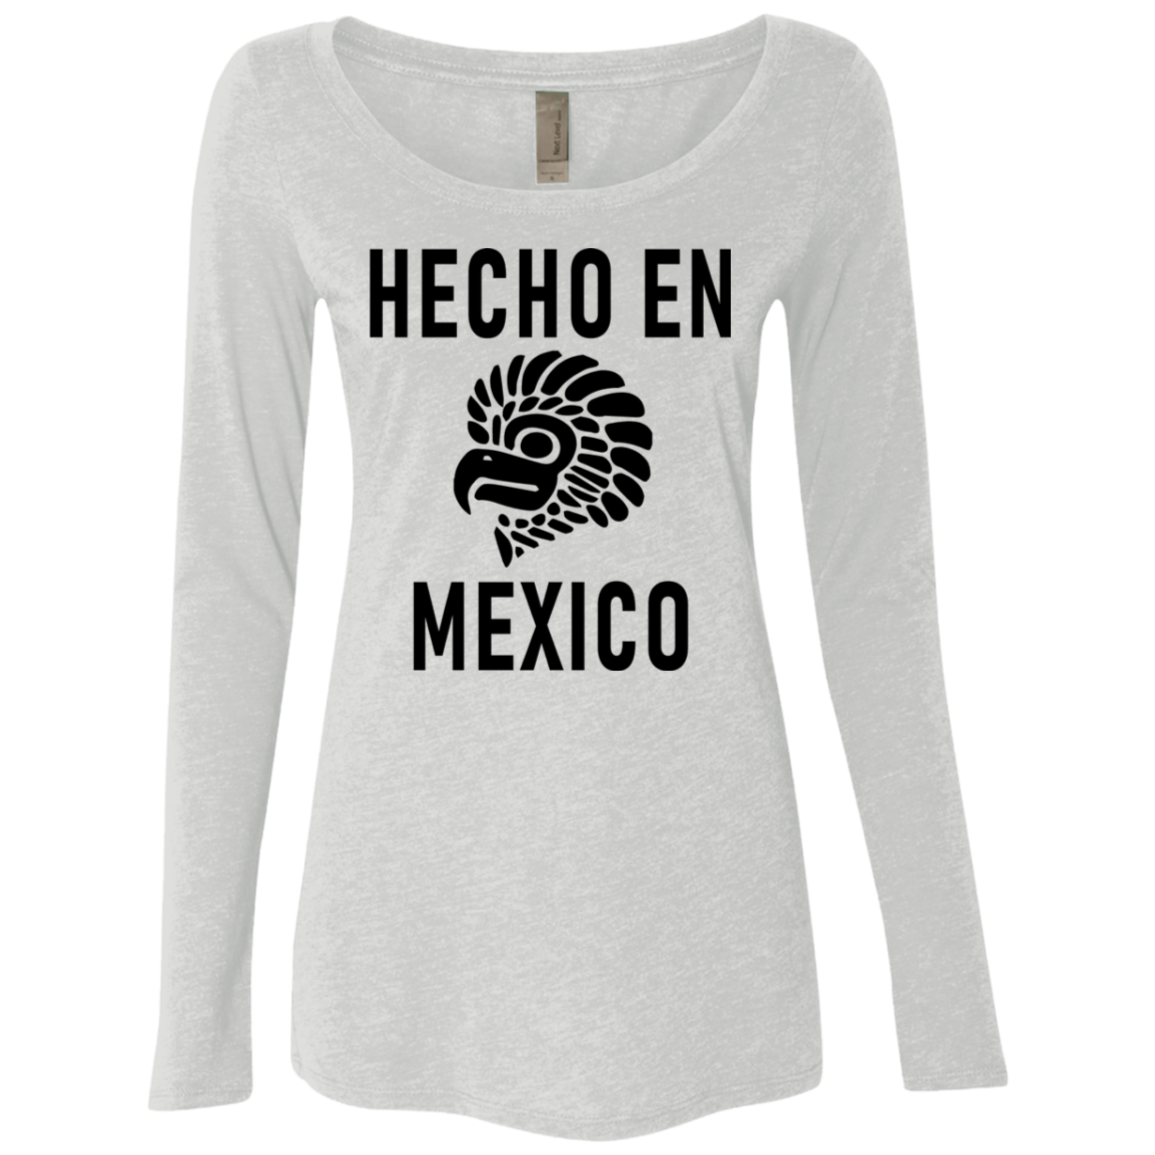 Hecho In Mexico Women's Long Sleeve Tee